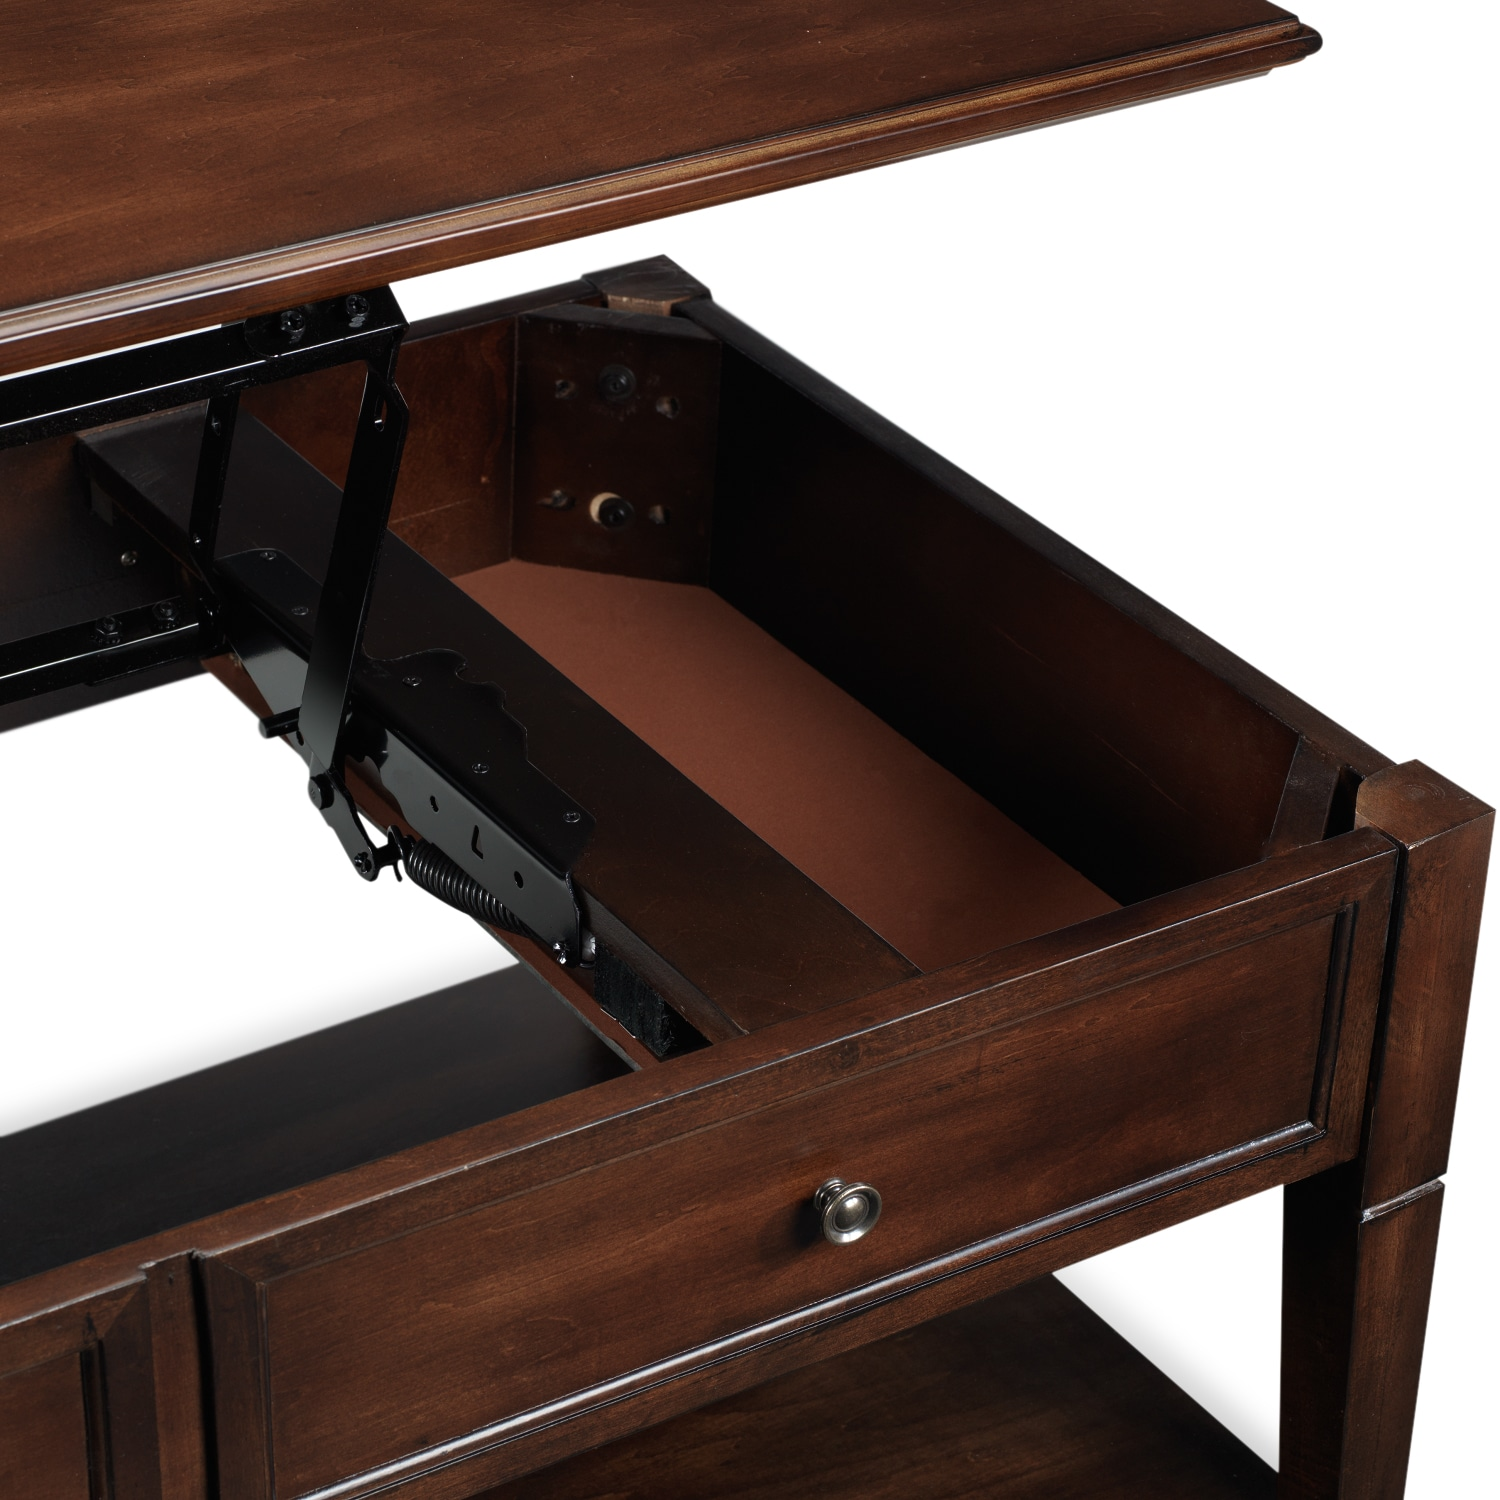 Coventry Lift-Top Coffee Table - Espresso